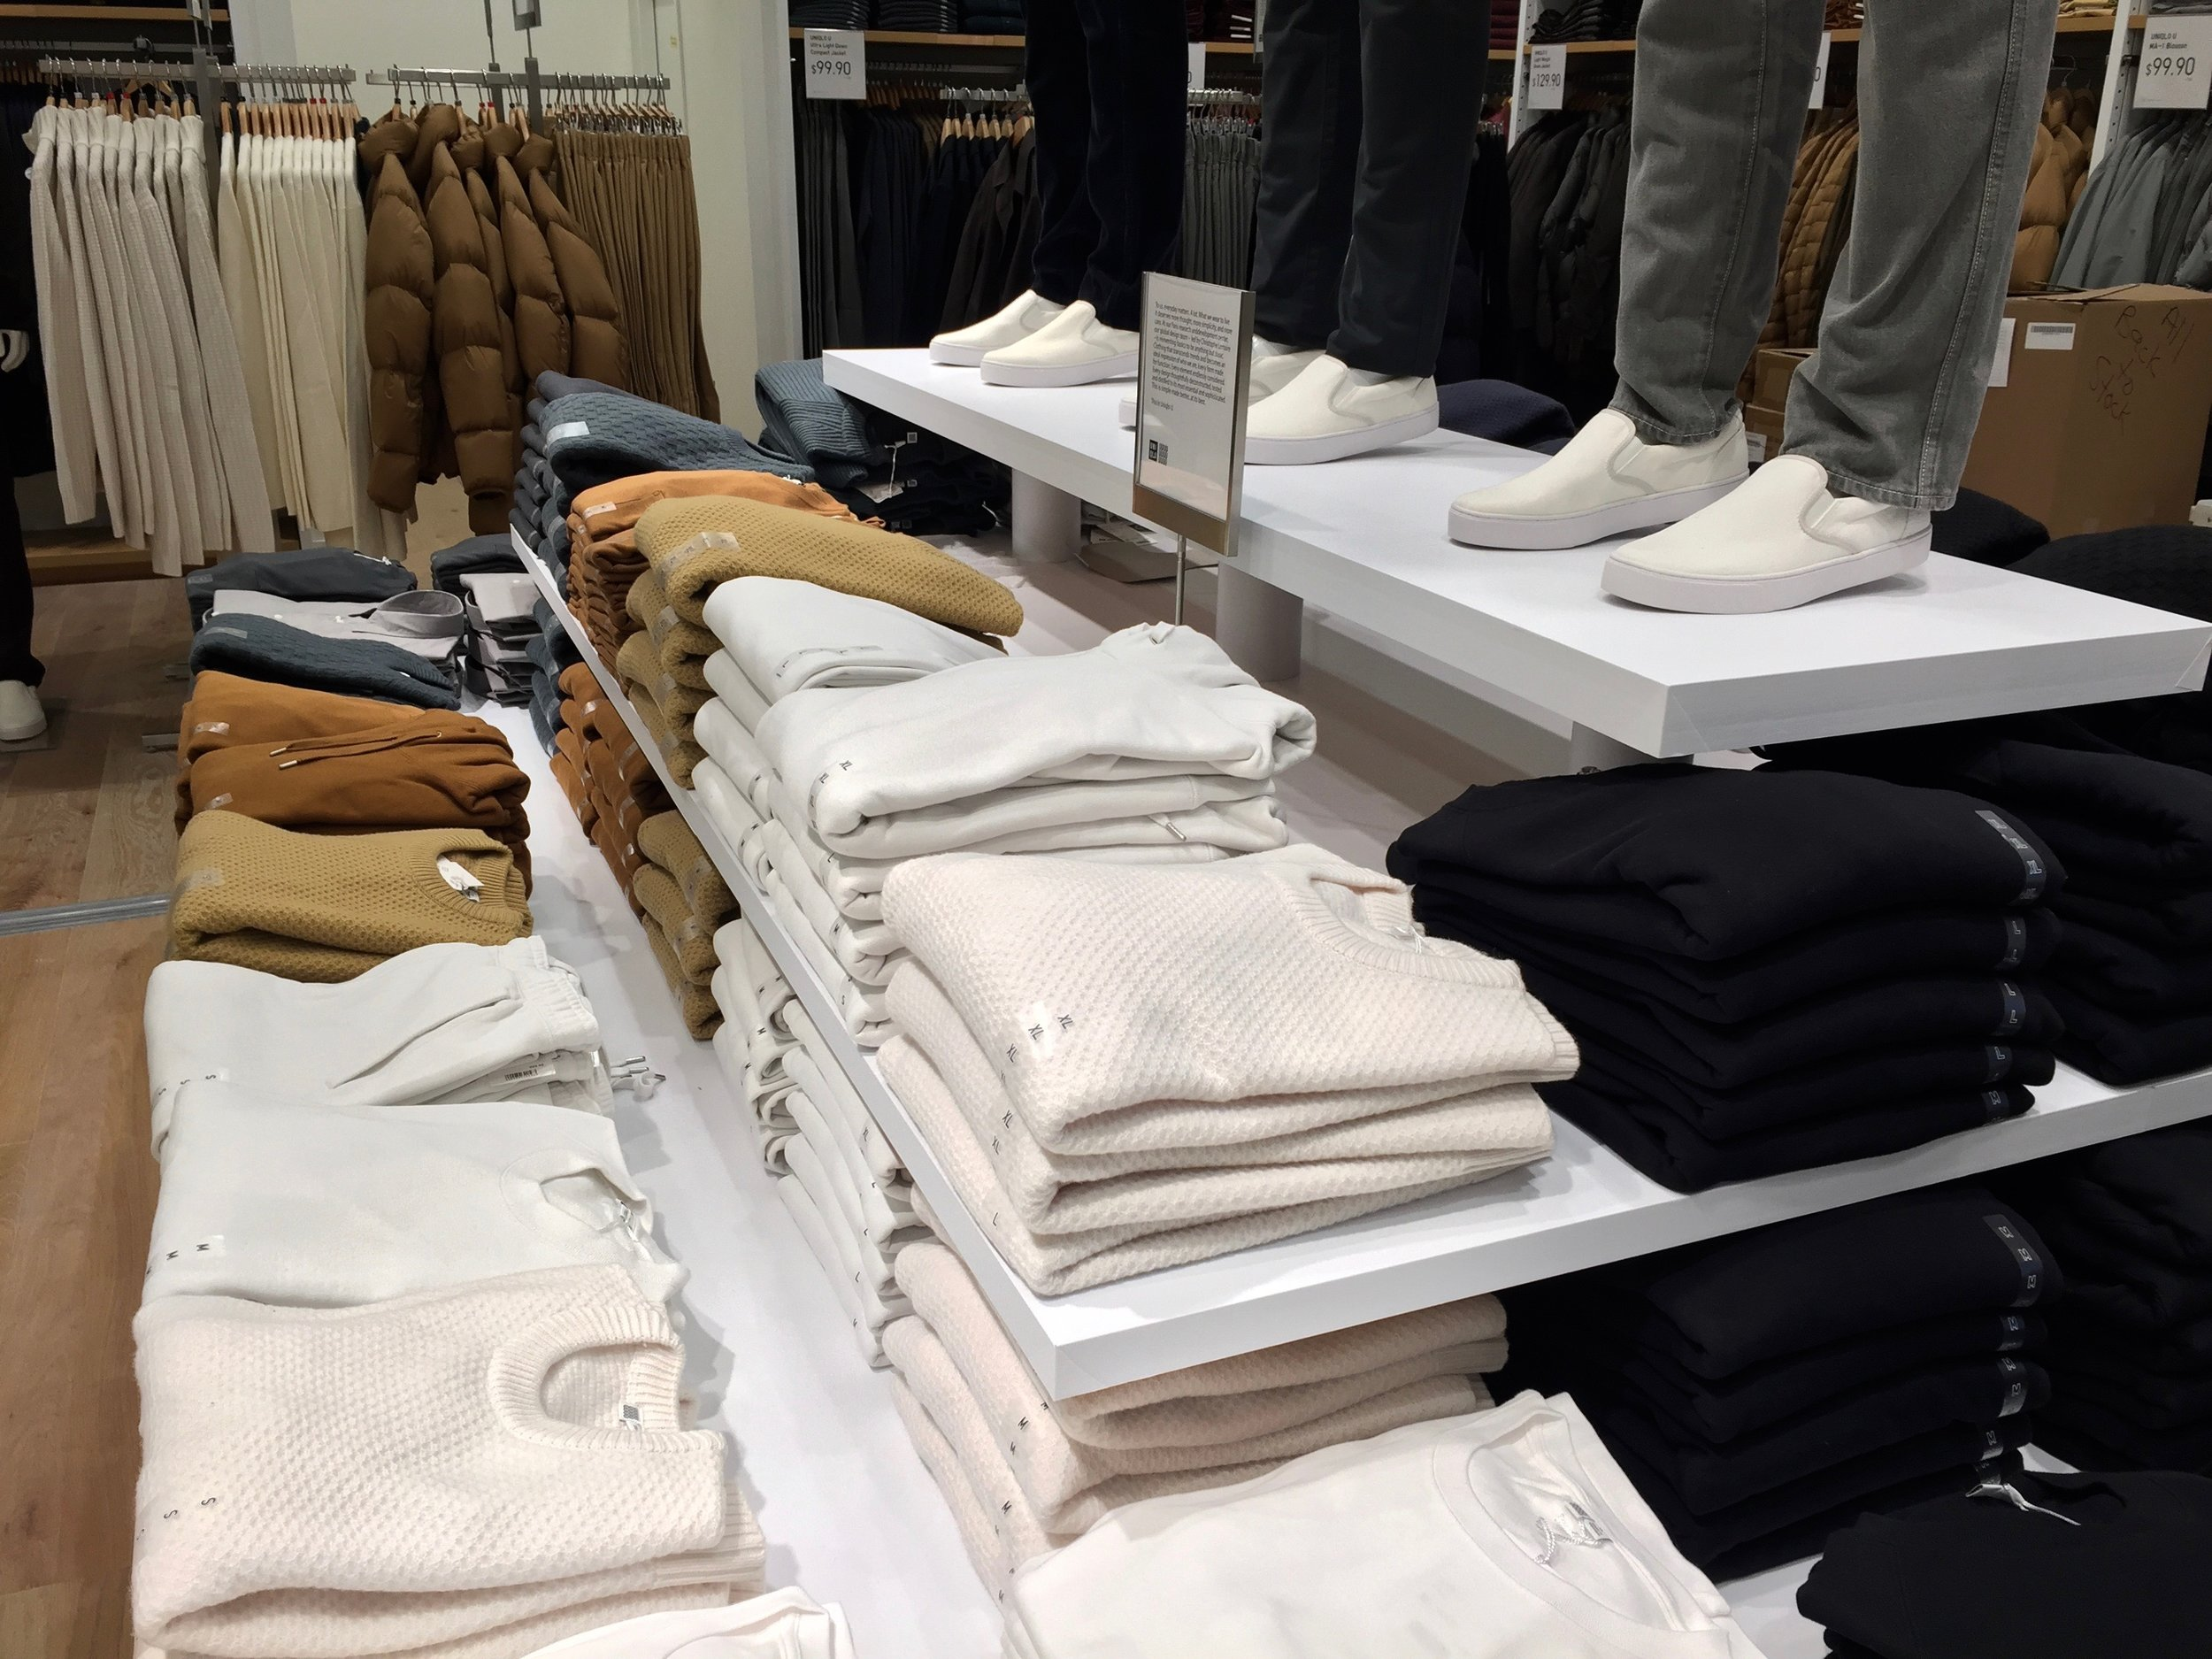 Men's sweaters from the 'Uniqlo U' clothing line sit on the second floor display table. Photo: Devon Johnson